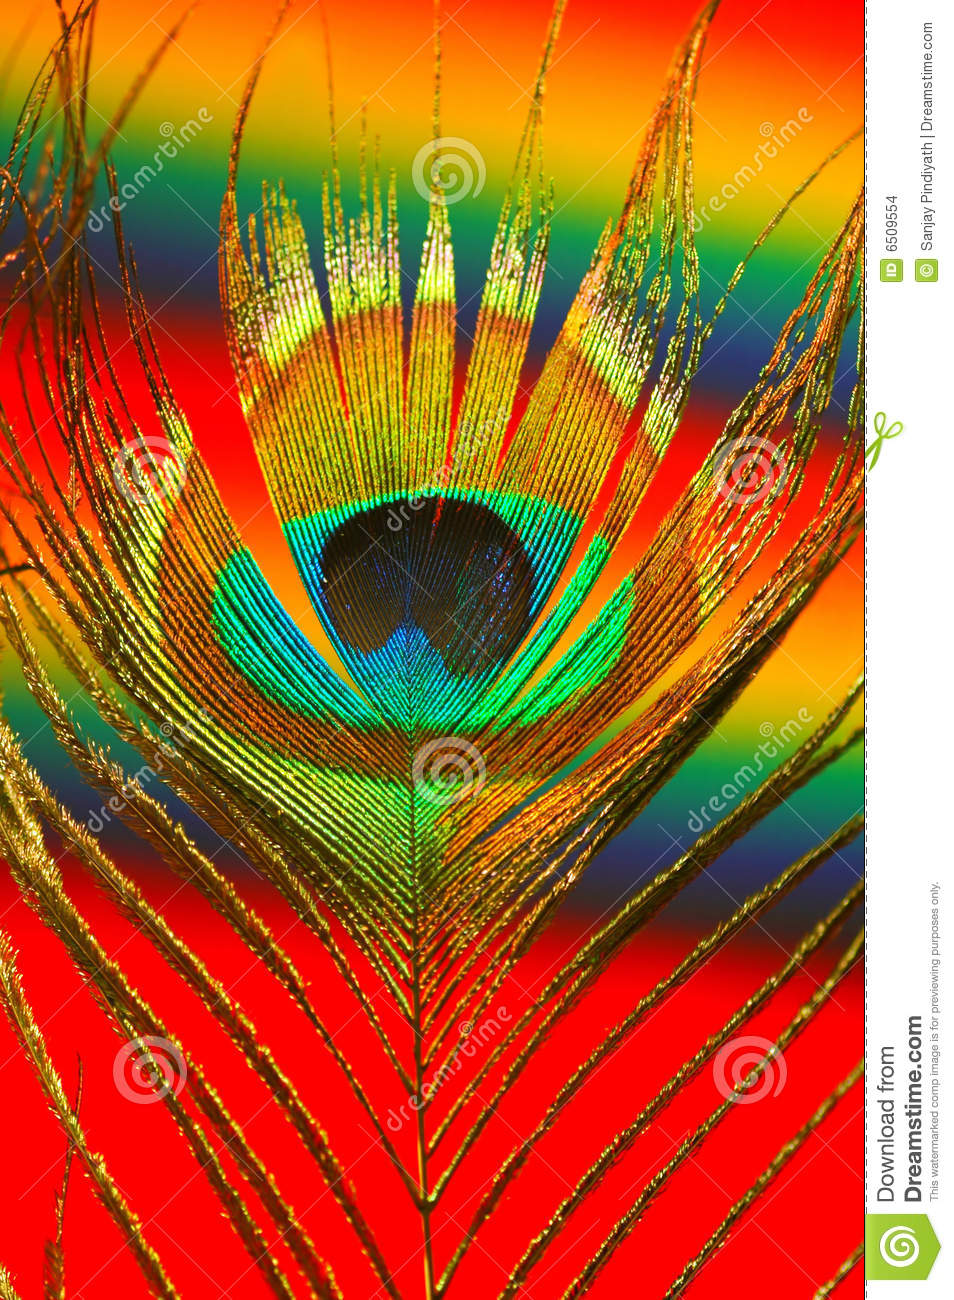 Interior wallpaper texture - Colorful Peacock Feather Stock Images Image 6509554